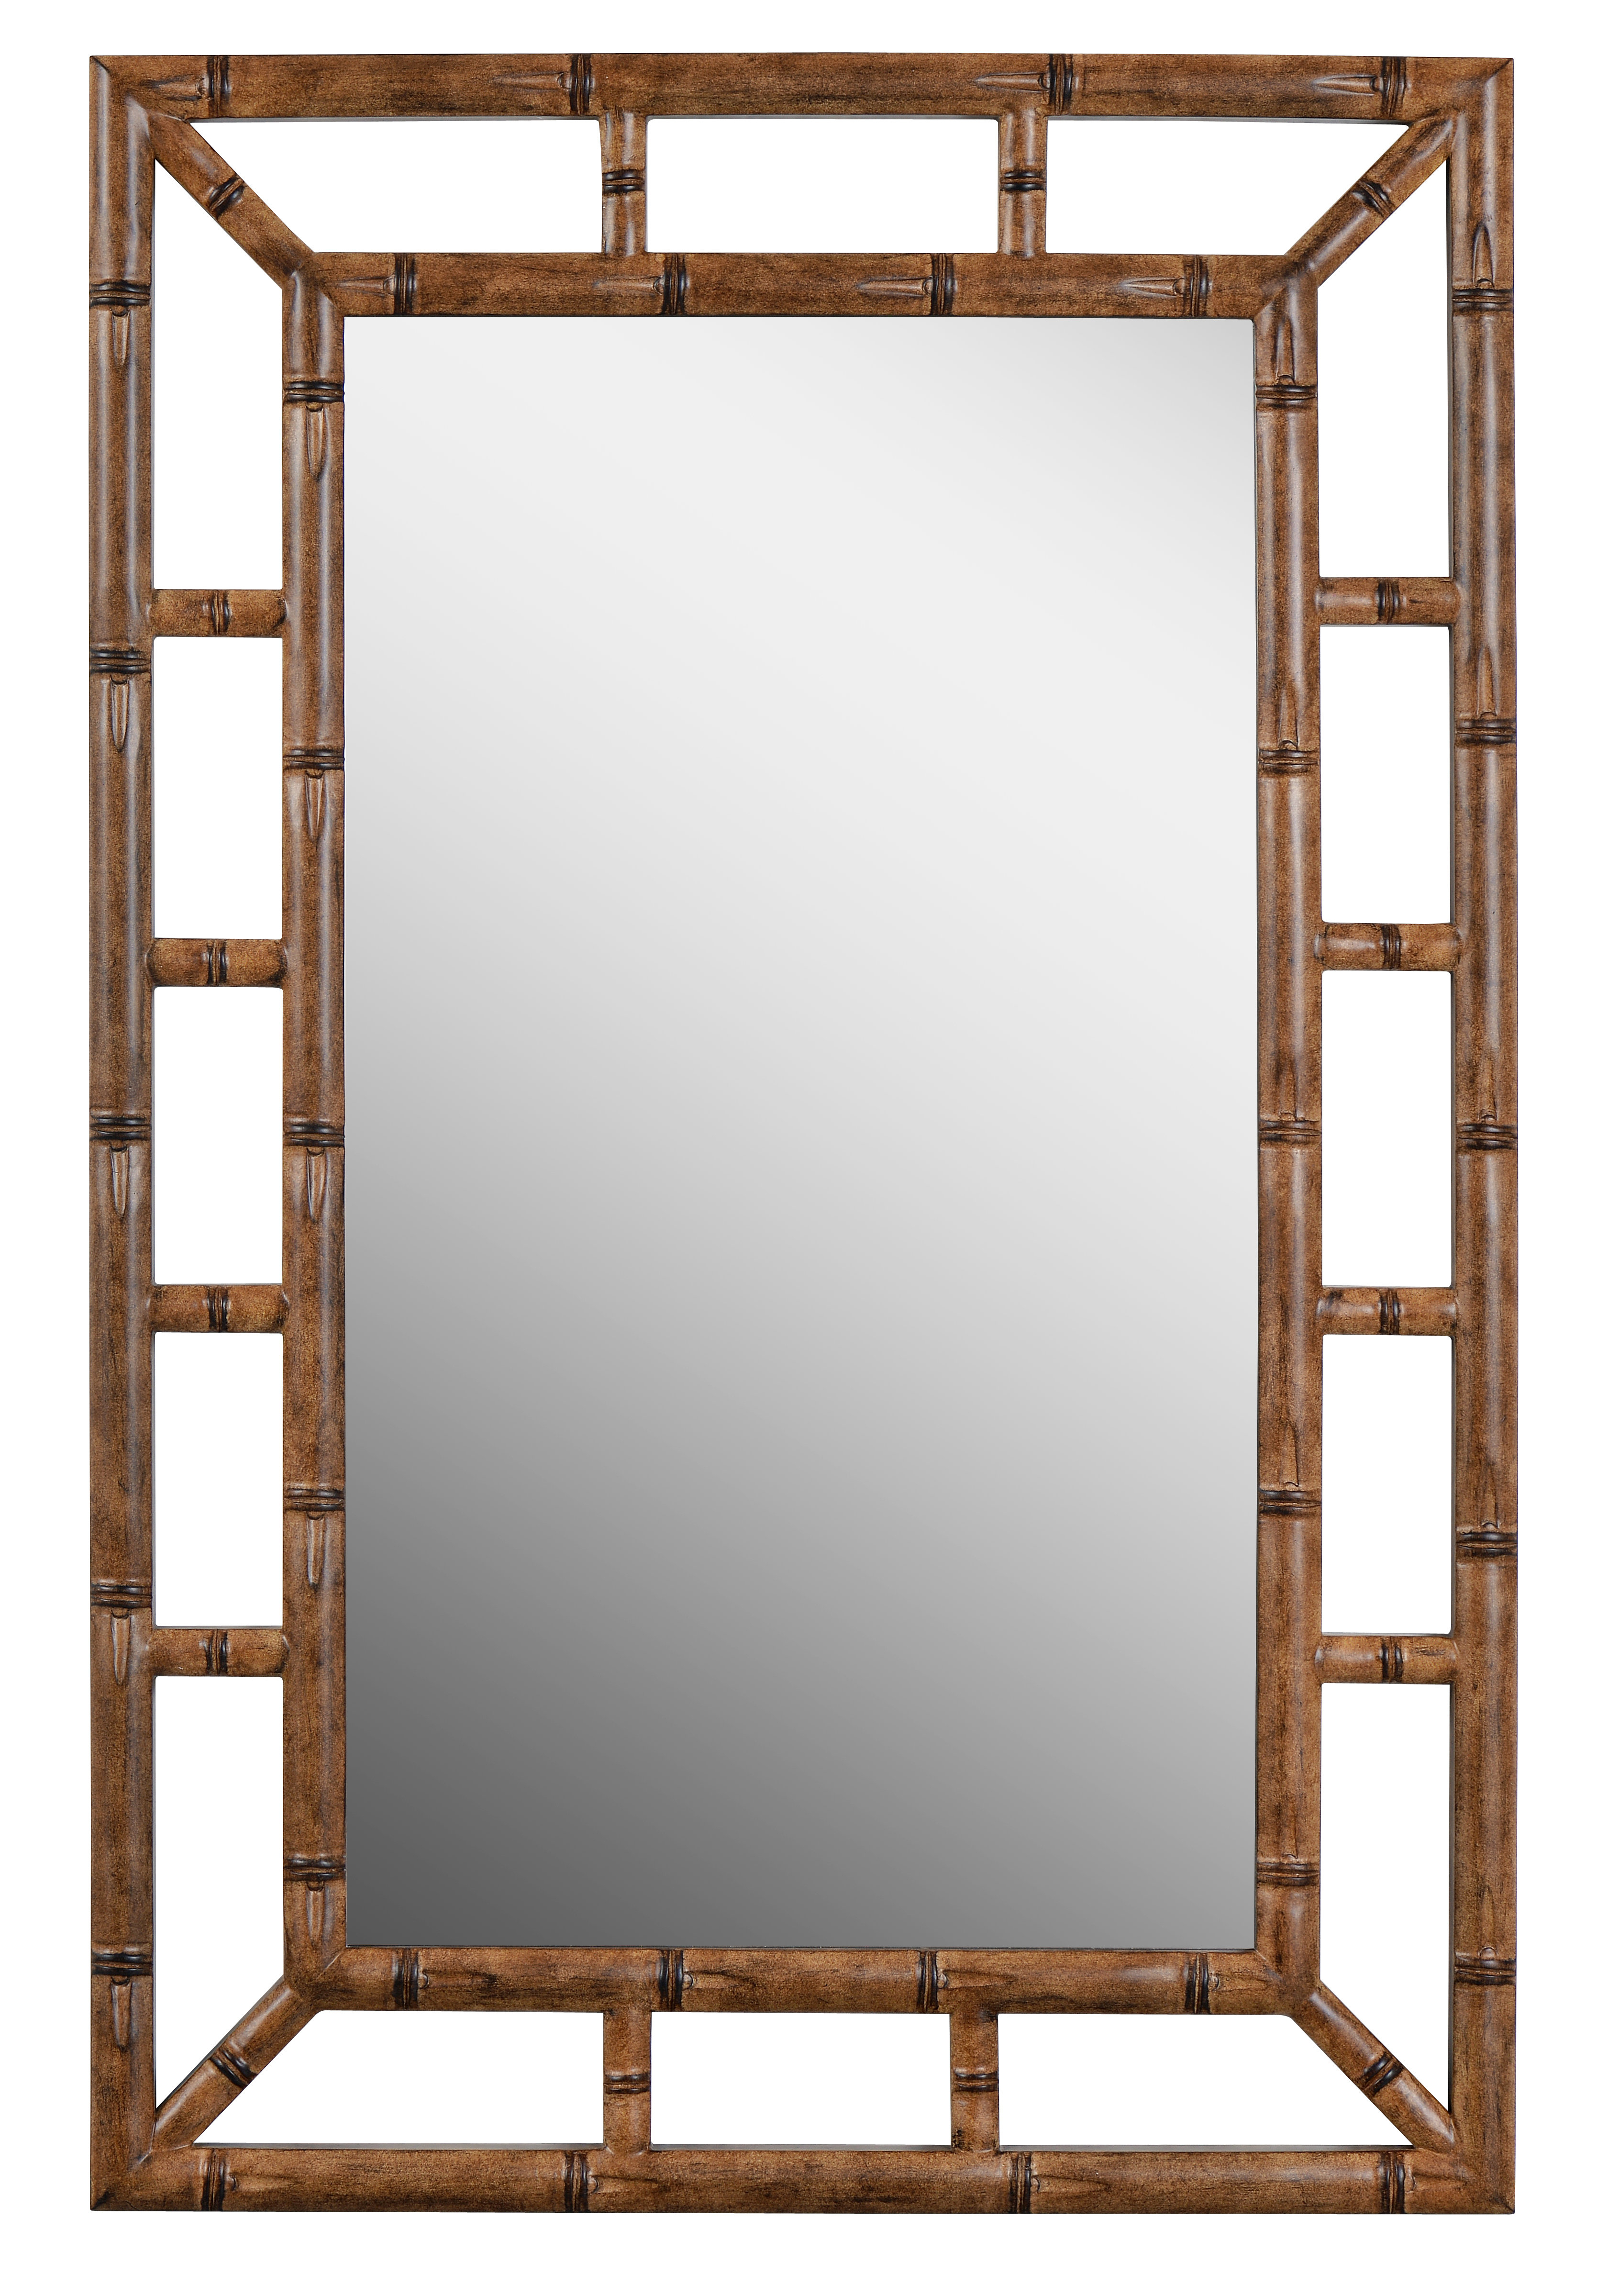 Cleta Bamboo Brown Traditional Beveled Wall Mirror For Well Liked Tellier Accent Wall Mirrors (View 3 of 20)